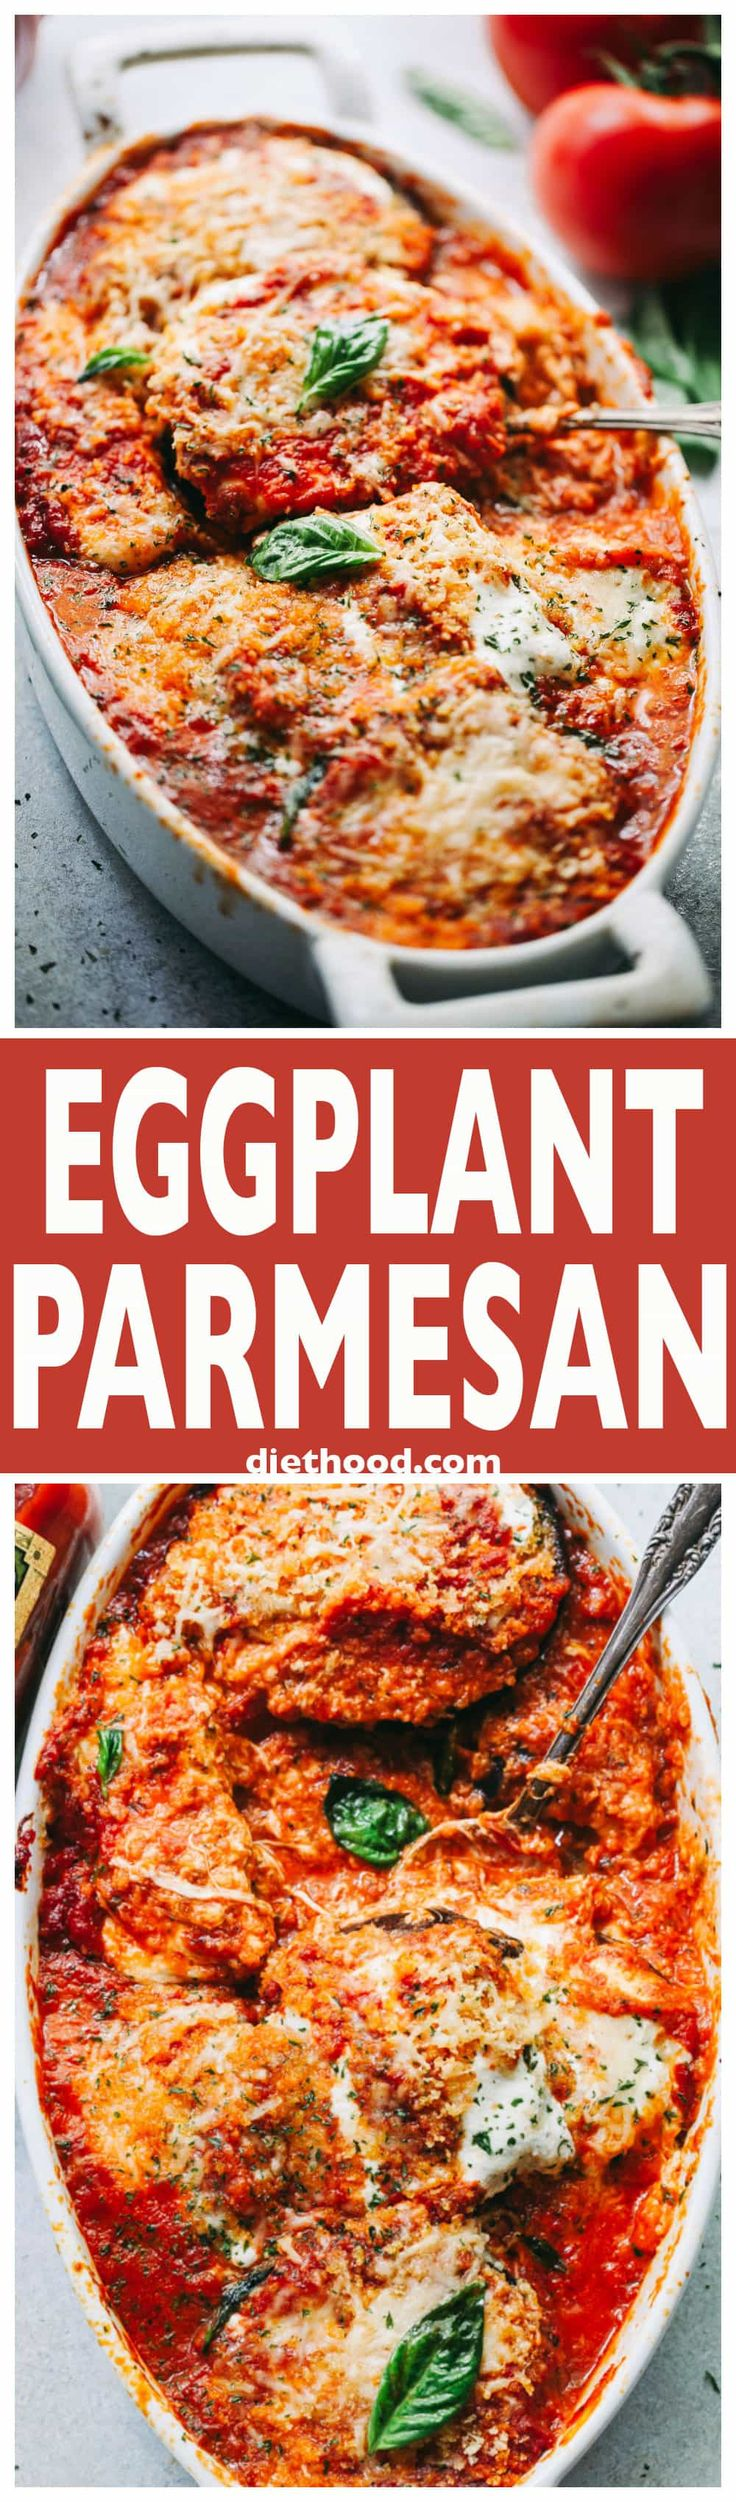 ***Eggplant Parmesan Recipe ~ a classic Italian baked Eggplant Parmesan prepared with eggplants, tomato sauce, and cheese!